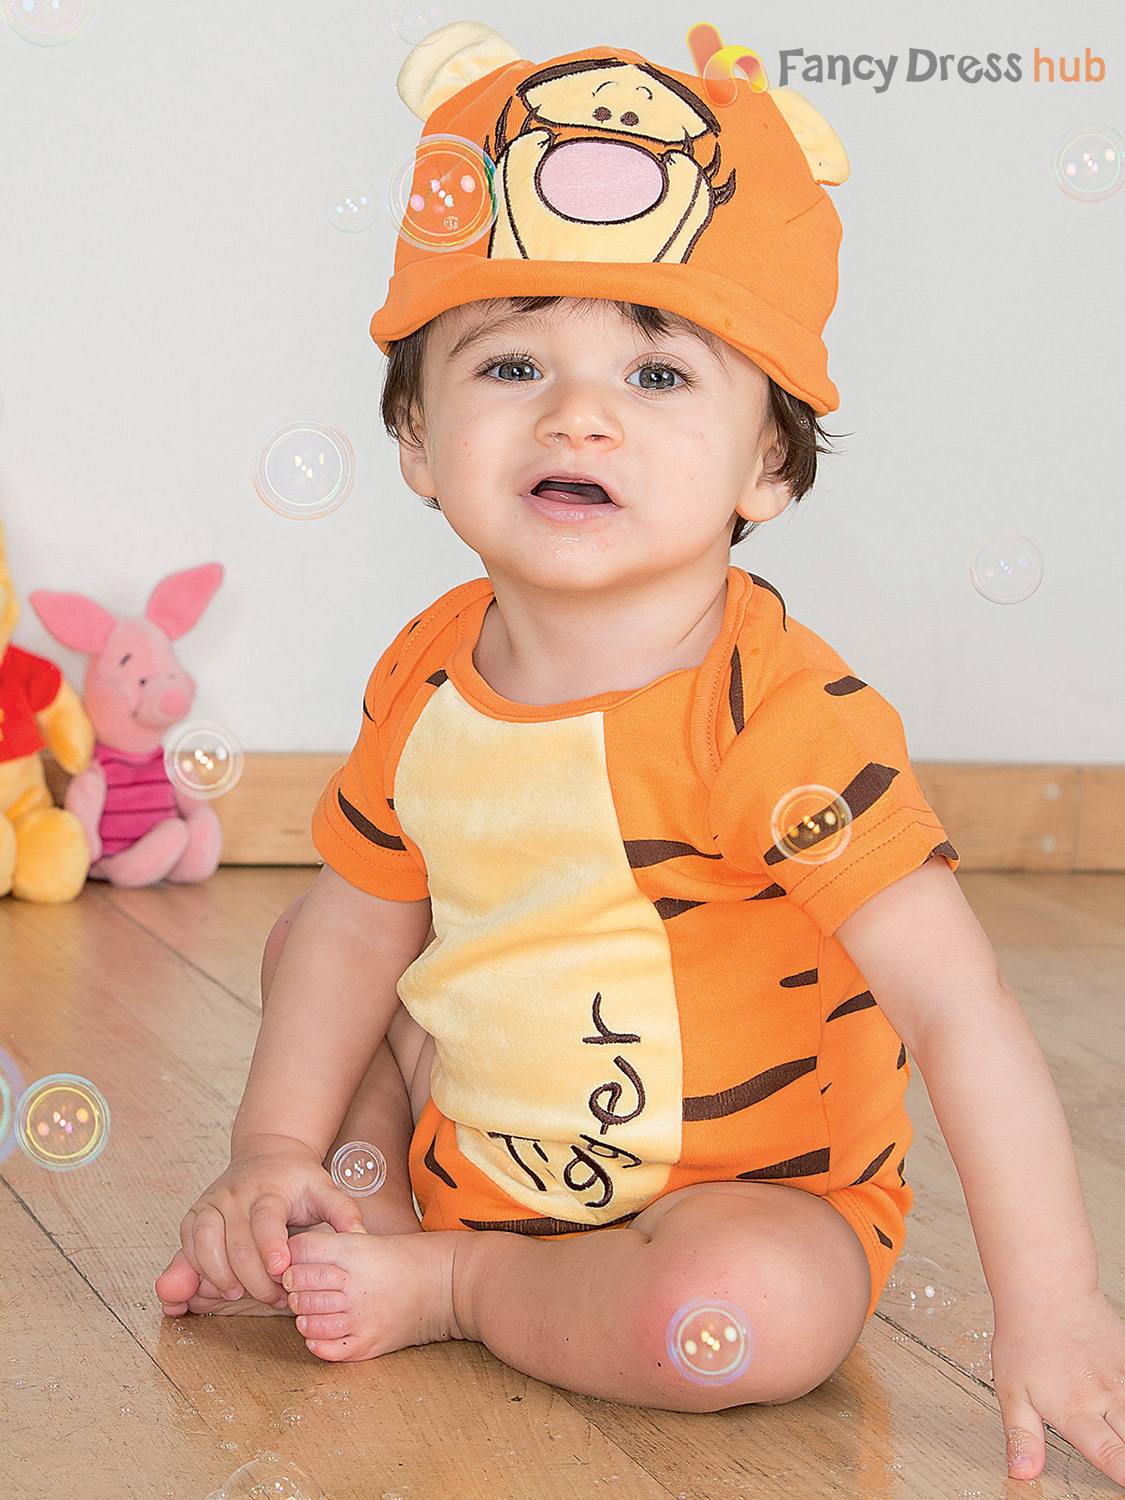 Disney-Baby-Winnie-the-Pooh-Bodysuit-Hood-Outfit-Toddler-Fancy-Dress-Costume thumbnail 5